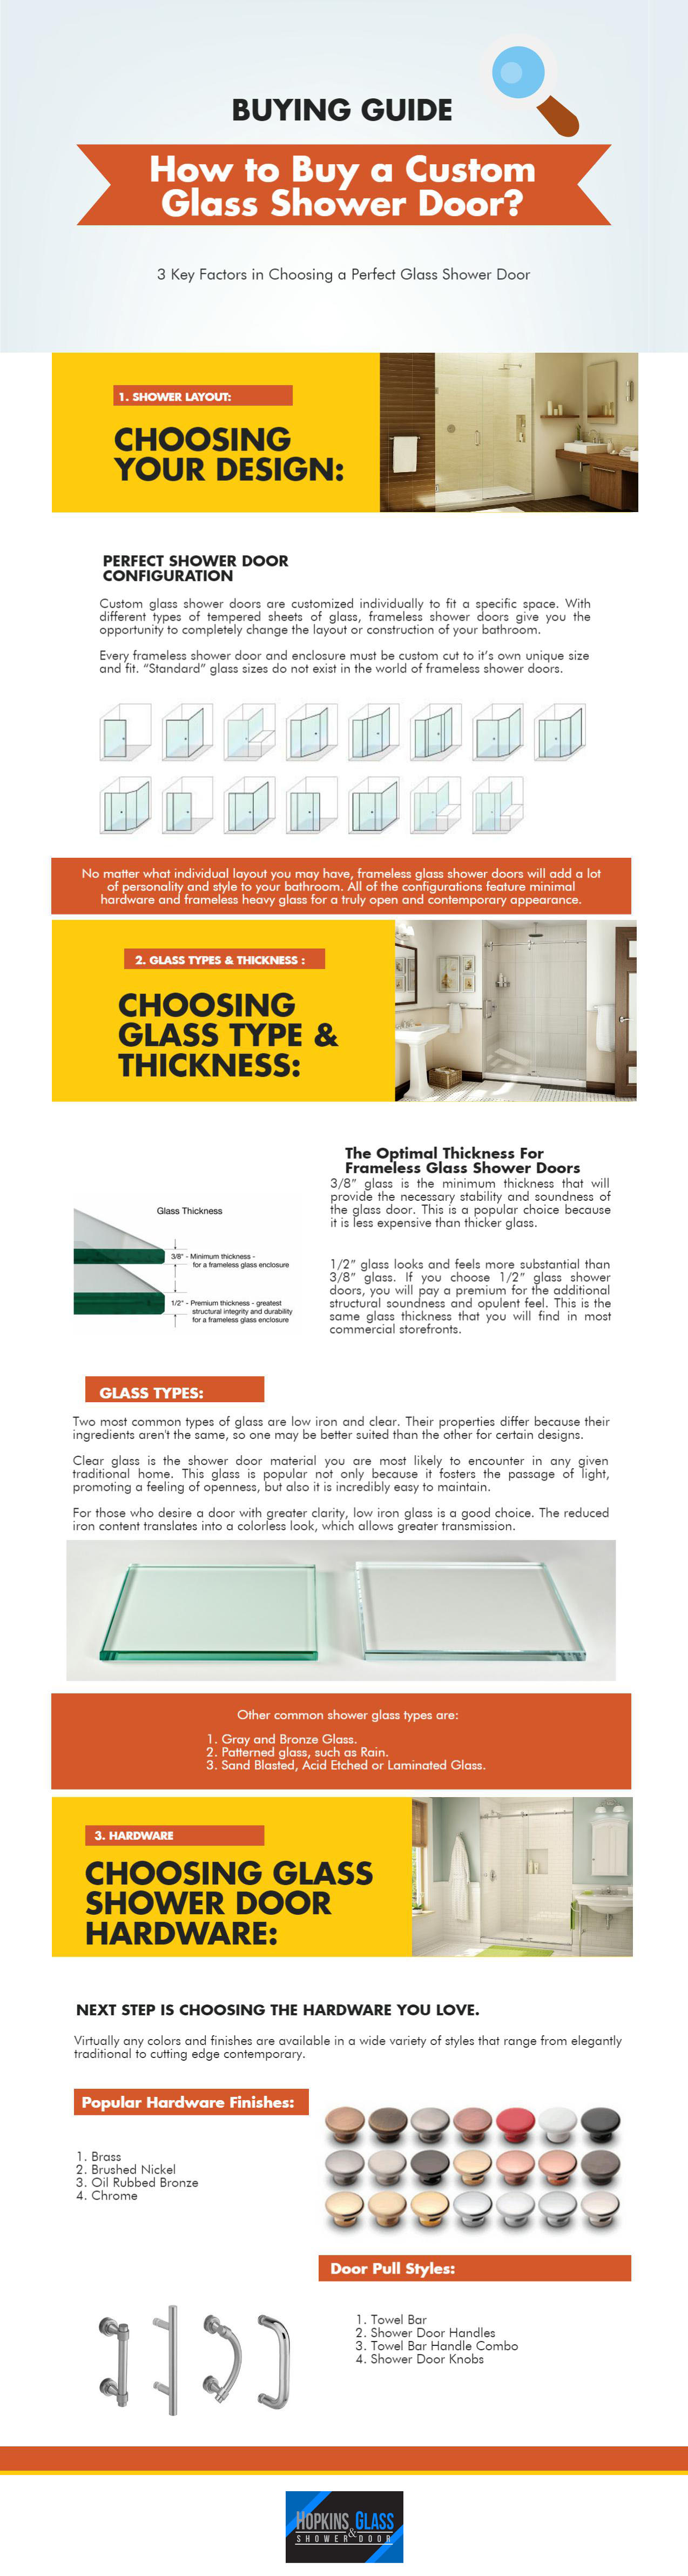 frameless glass shower doors buying guide Hopkins Glass Minnesota